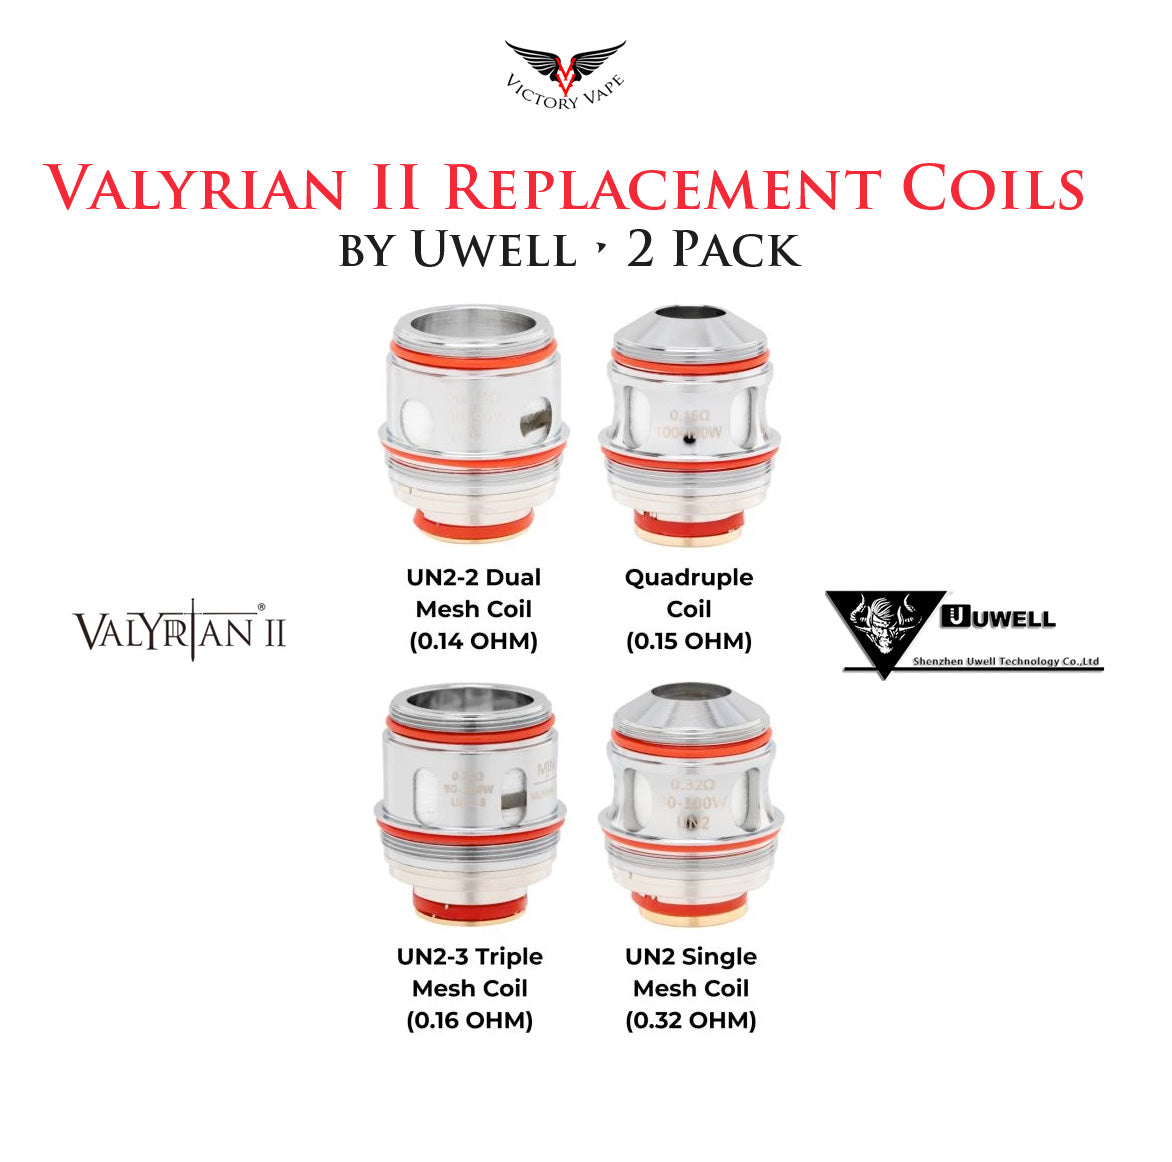 Uwell Valyrian II 2 Replacement Coils • 2 Pack